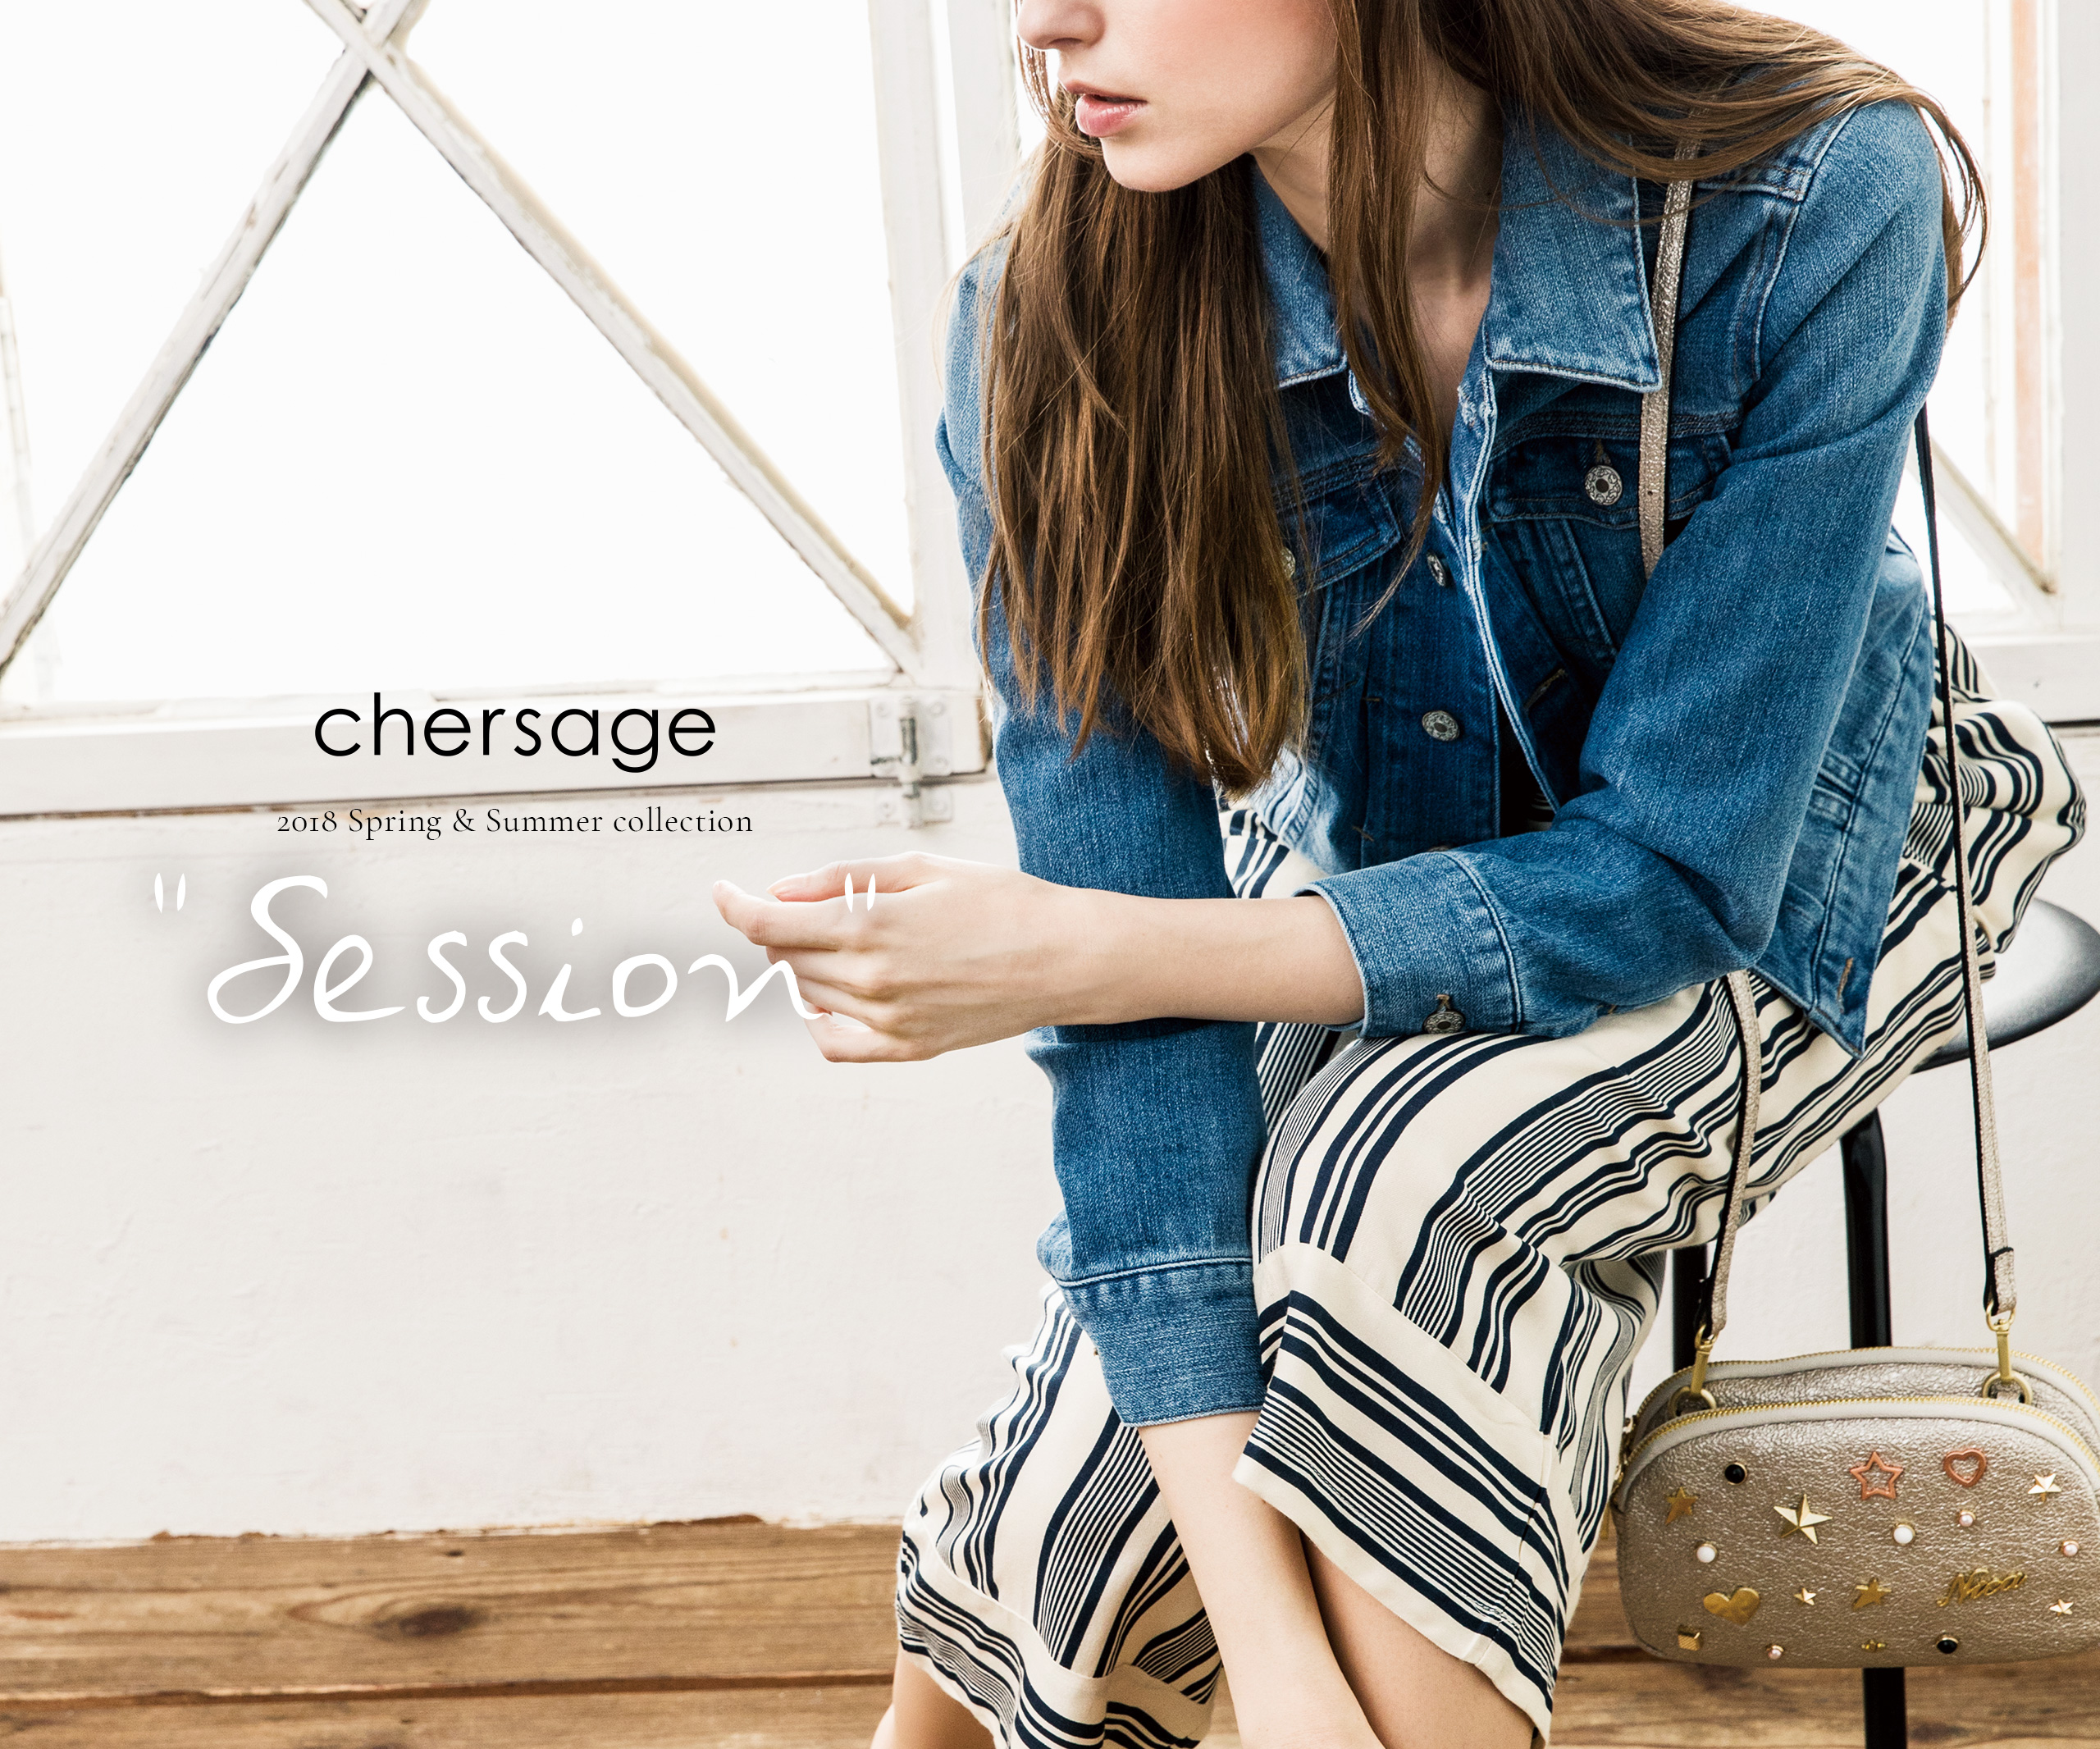 Chersage 2018 Spring & Summer Collection